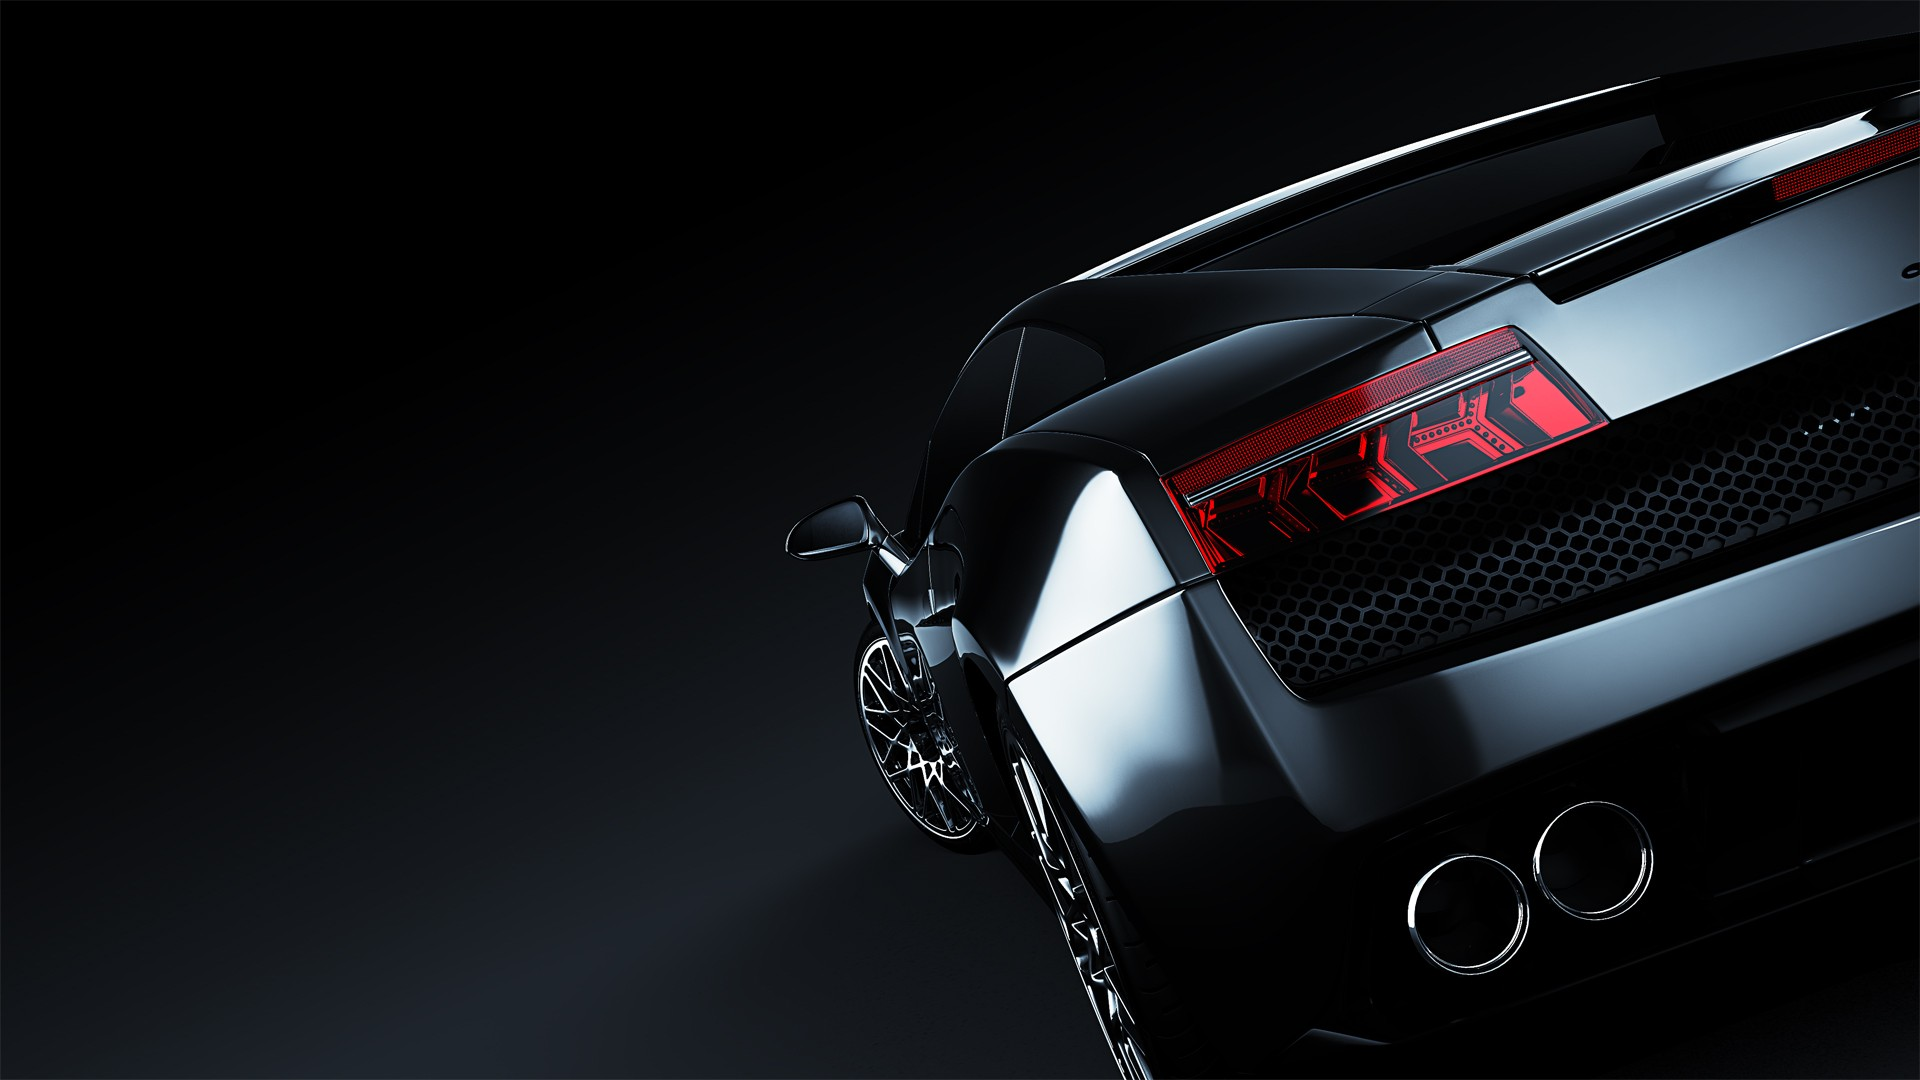 Lamborghini HD Wallpaper 1080P Hd Wallpaper 1920x1080